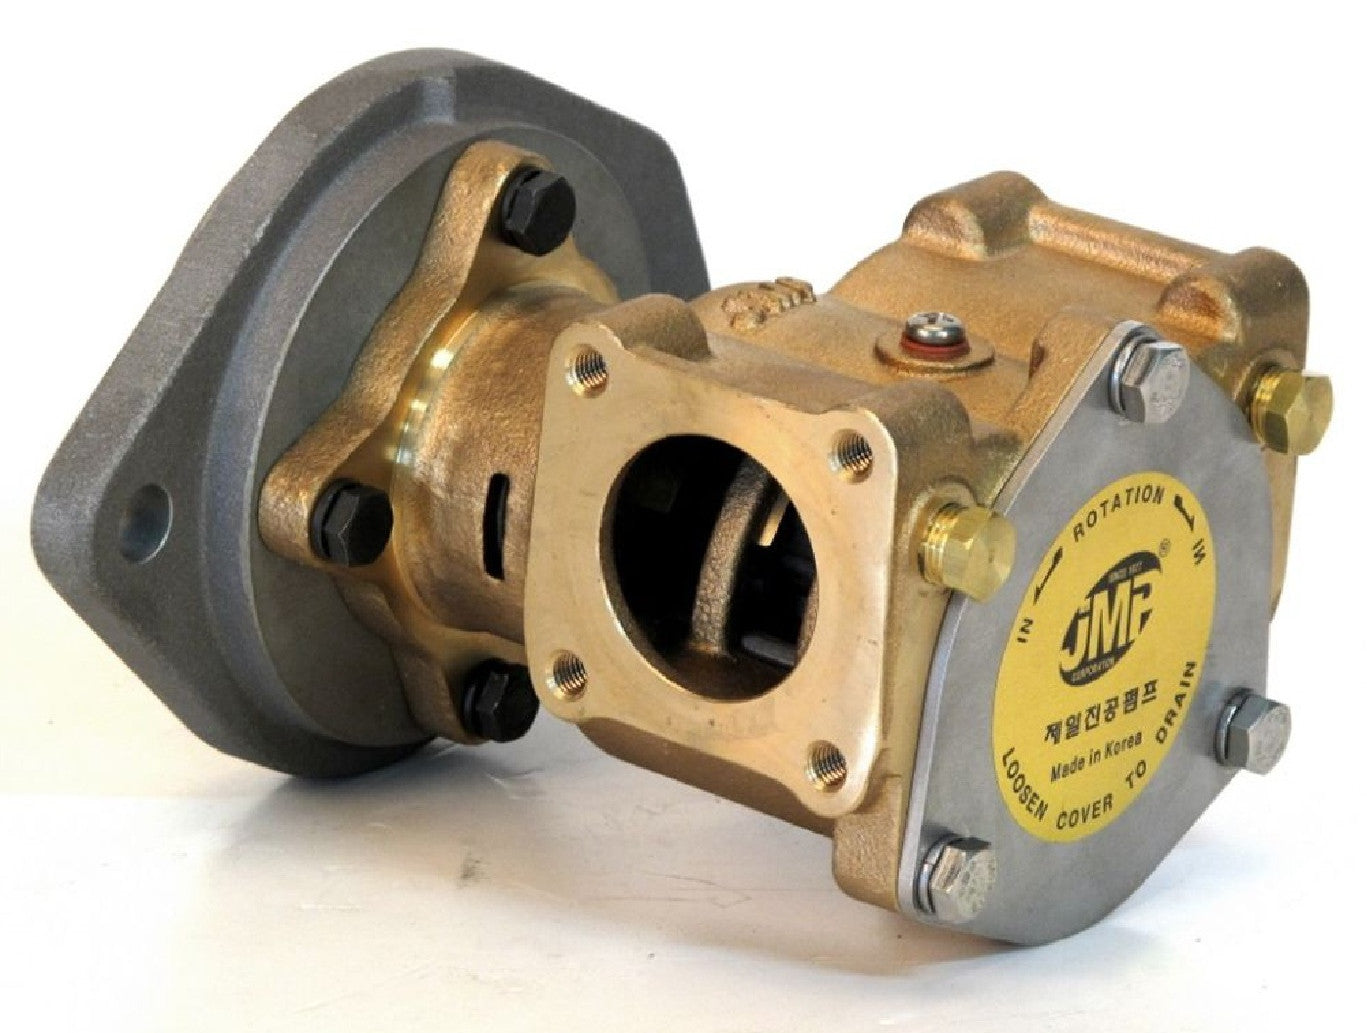 CATERPILLAR C7, C9, 3116, 3126 Seawater Pump Replacement JMP S7632